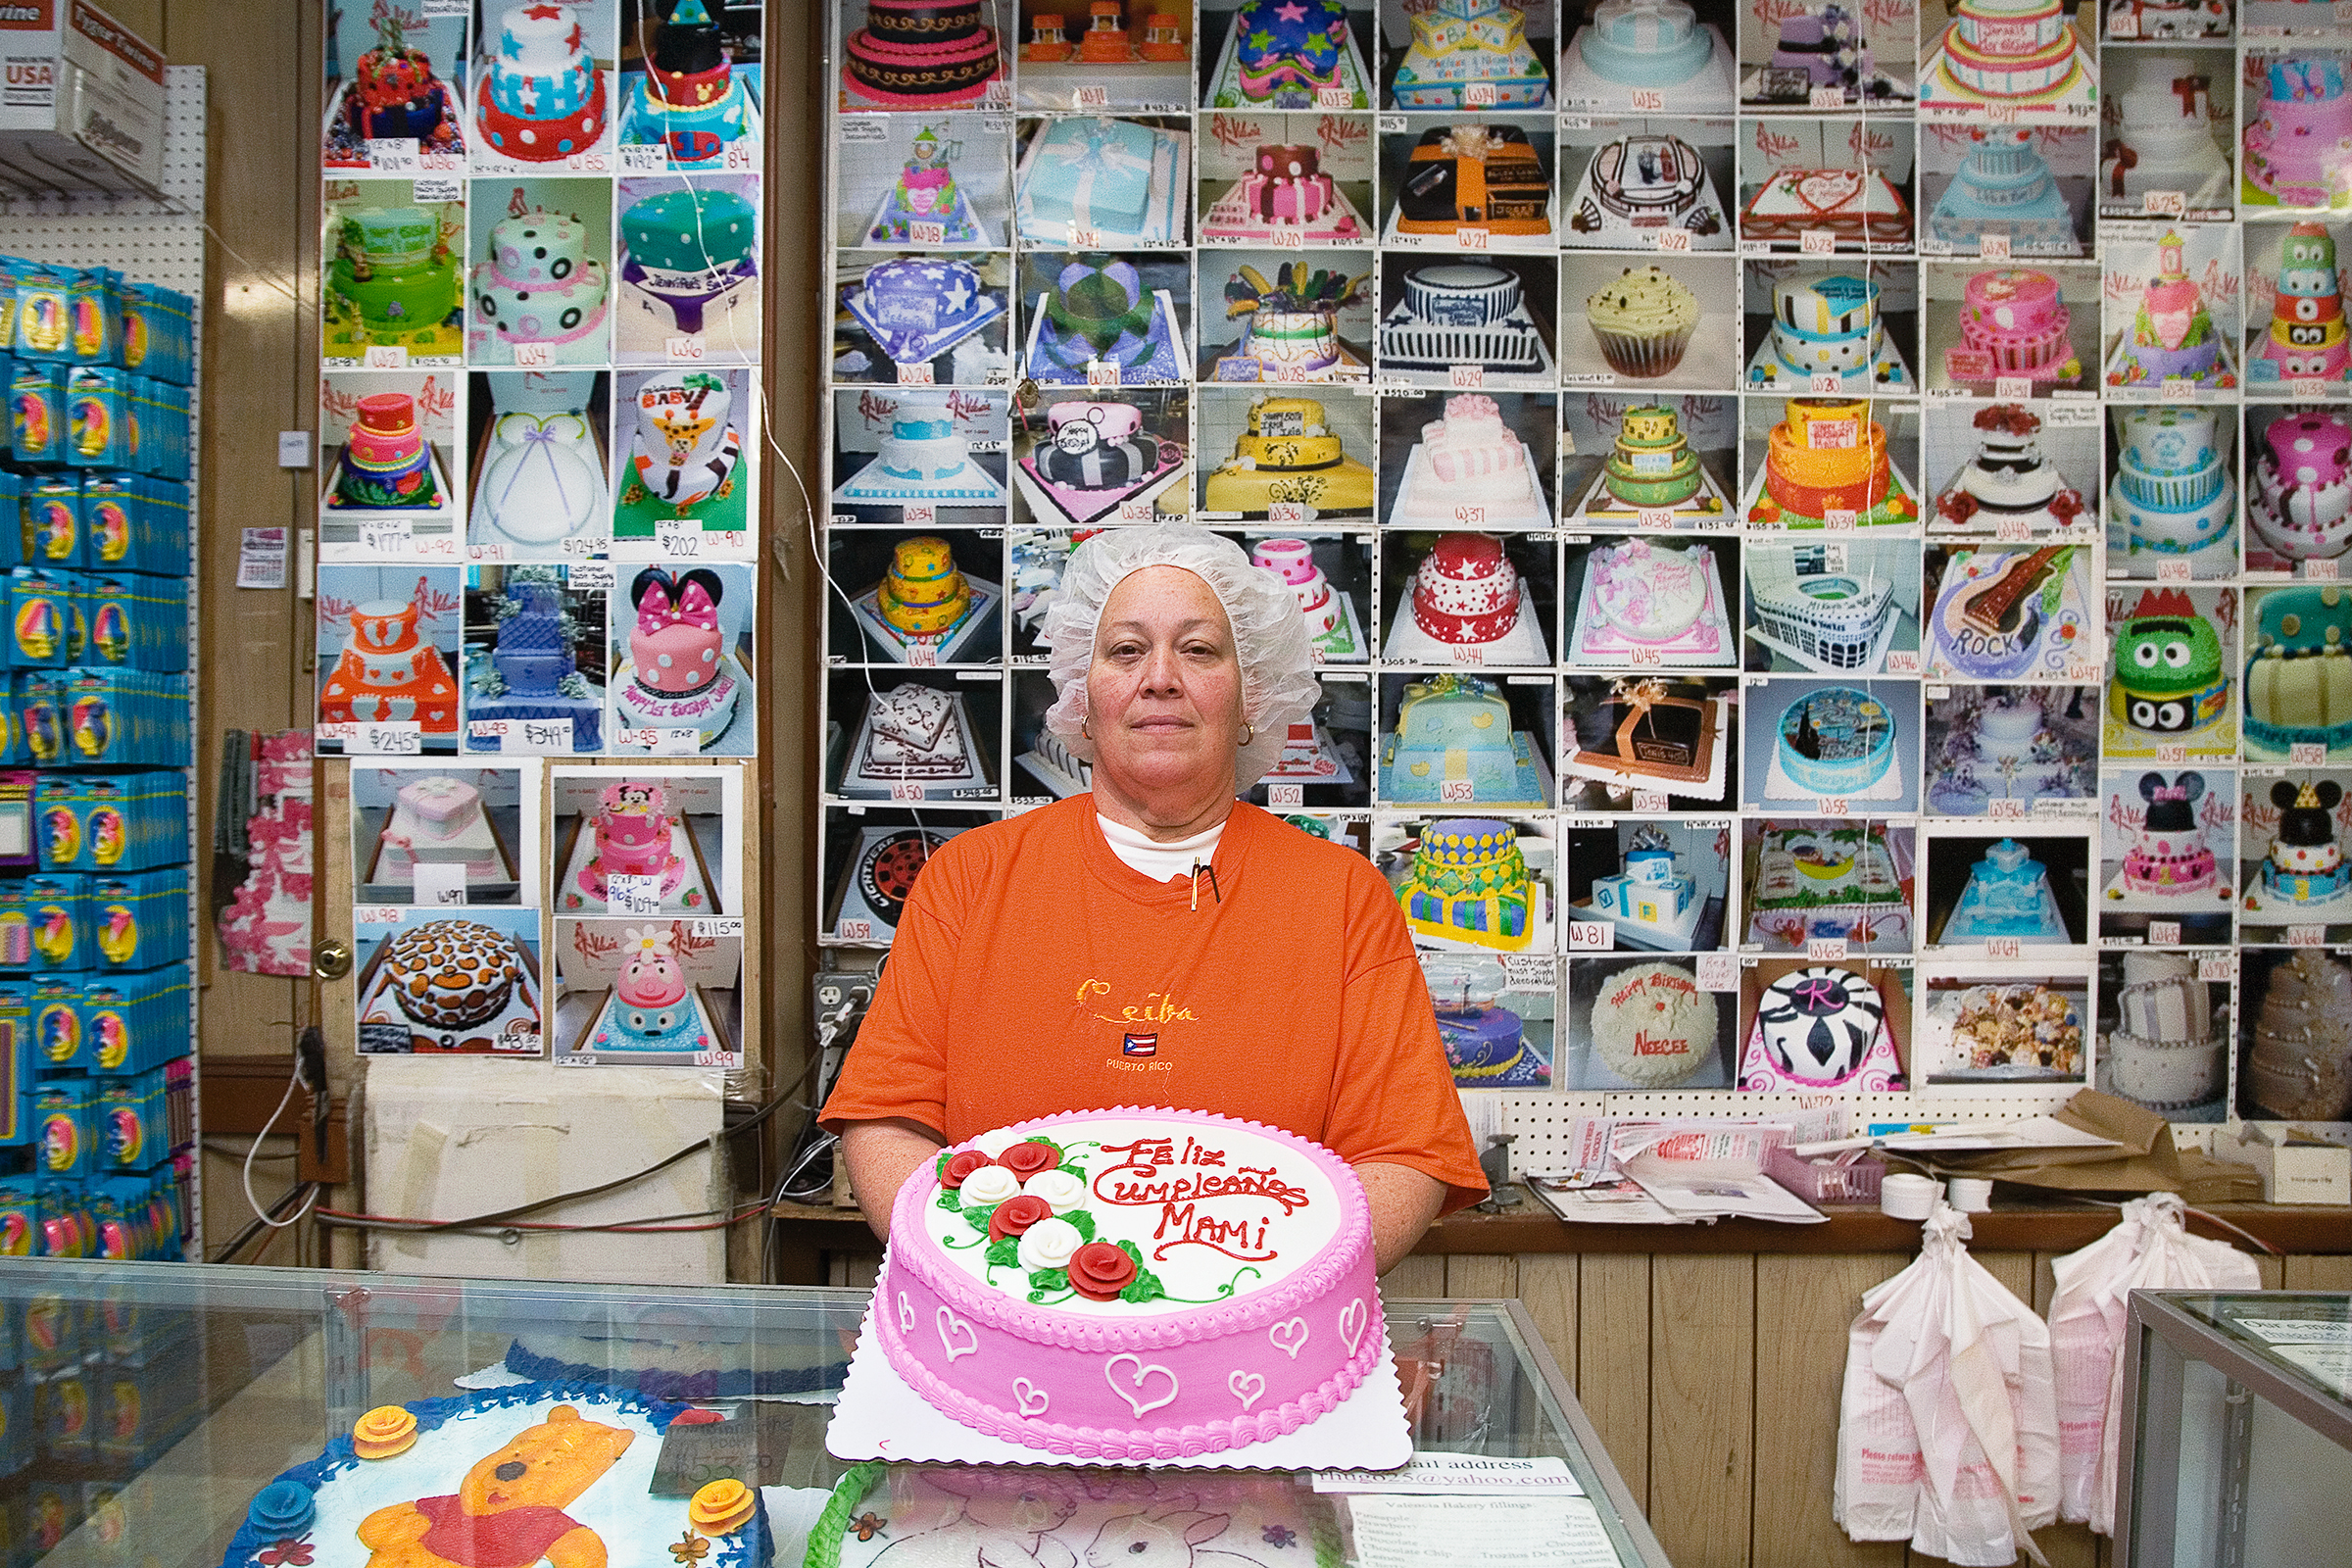 The Photography Show, presented by AIPAD, 'Americana ' curated by Sherri Littlefield,. 'Valencia Bakery: Head Decorator Nancy', from  The Bronx Trades Project